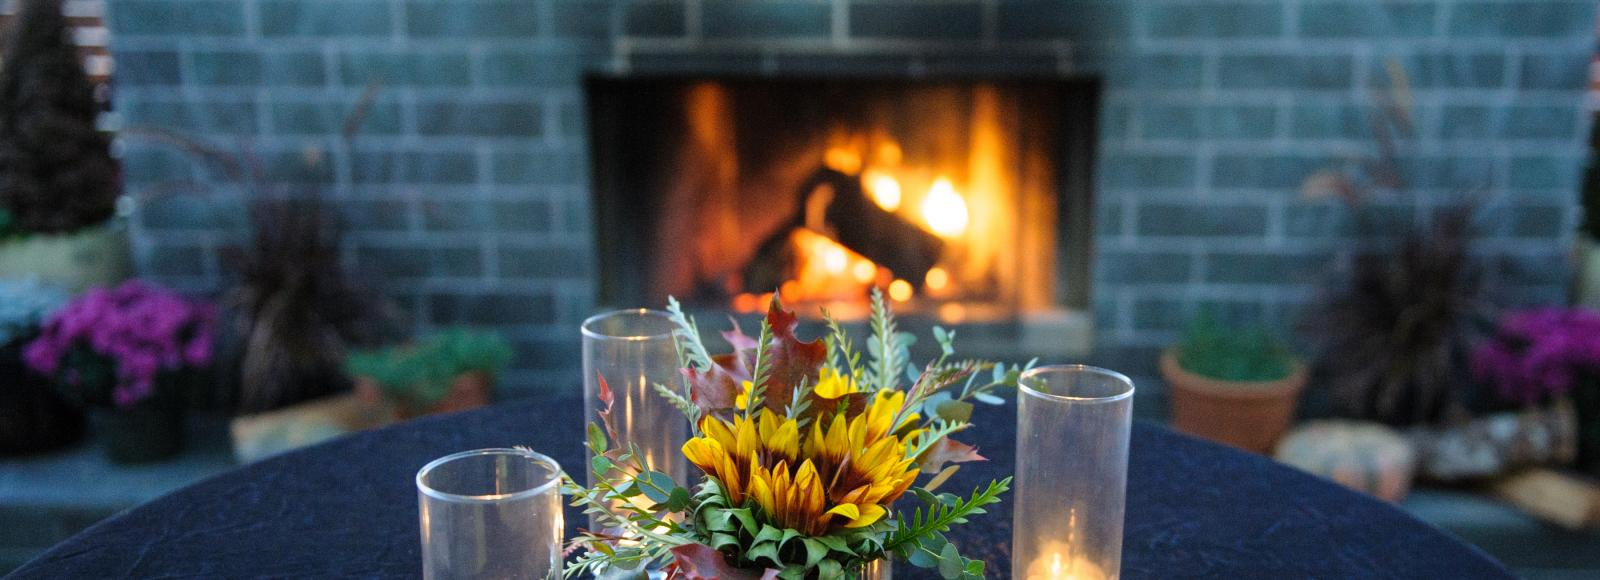 Candles and flowers on the rooftop terrace in front of a glowing fire